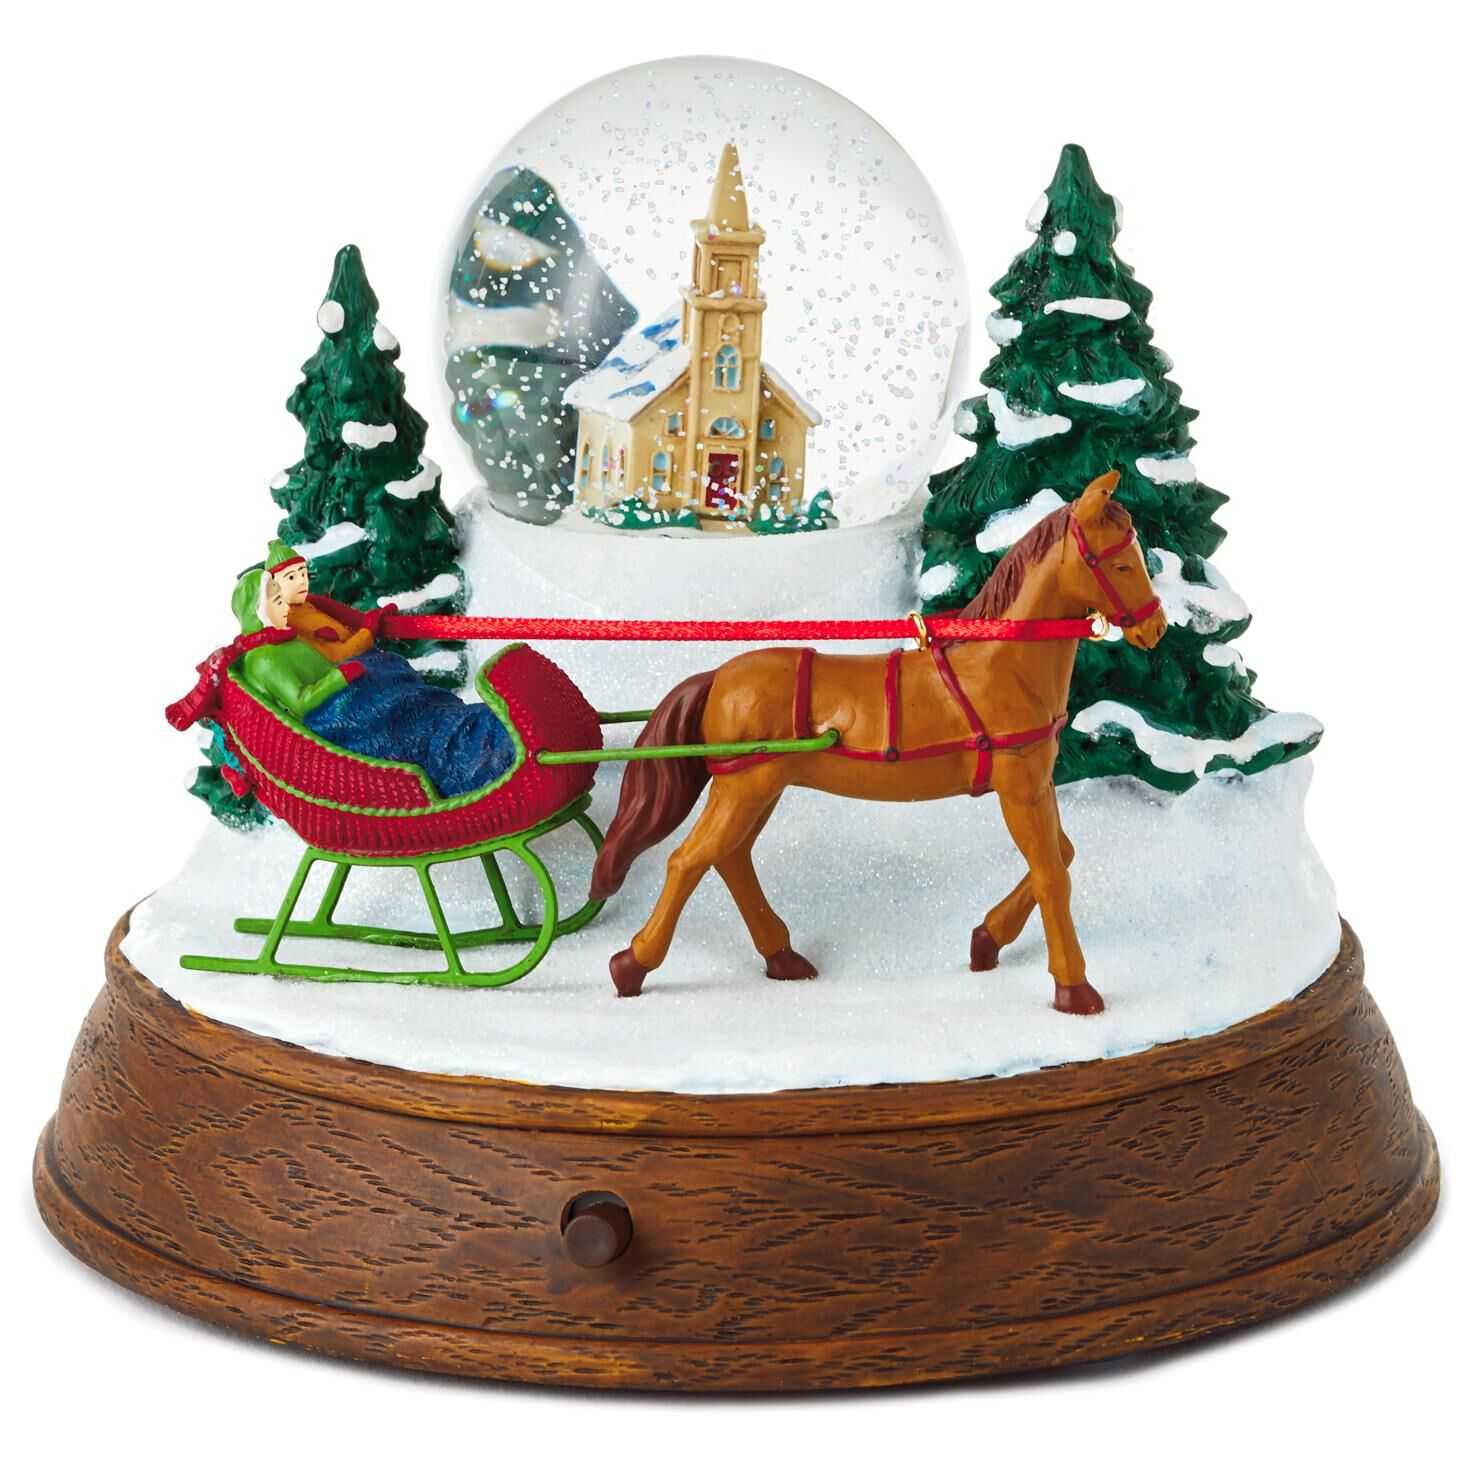 Christmas In Evergreen Hallmark.Christmas In Evergreen Sleigh Ride Musical Snow Globe With Light